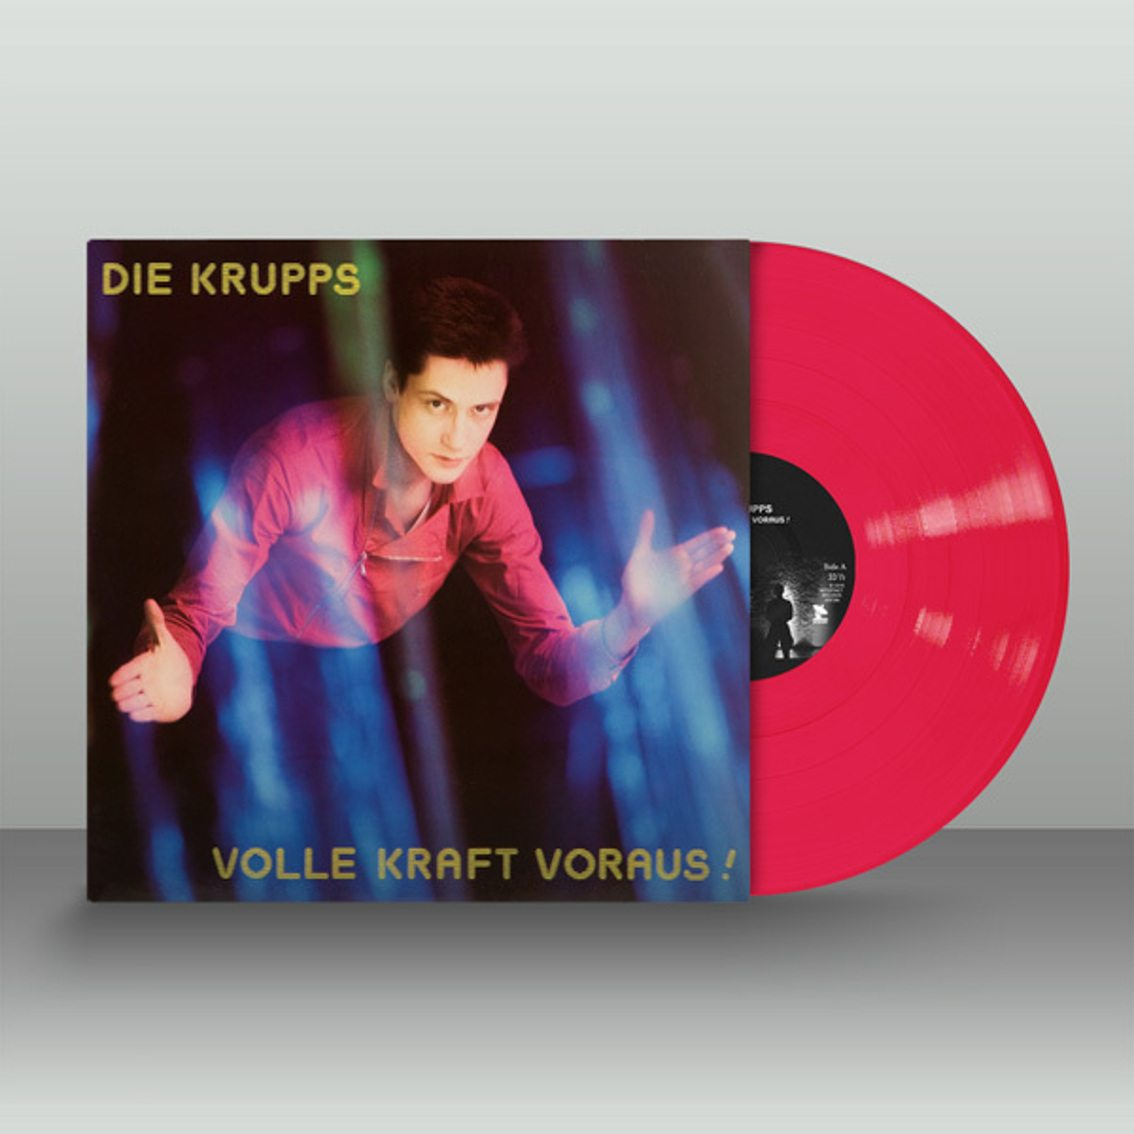 Die Krupps'Volle Kraft Voraus' gets vinyl treatment including... pink!